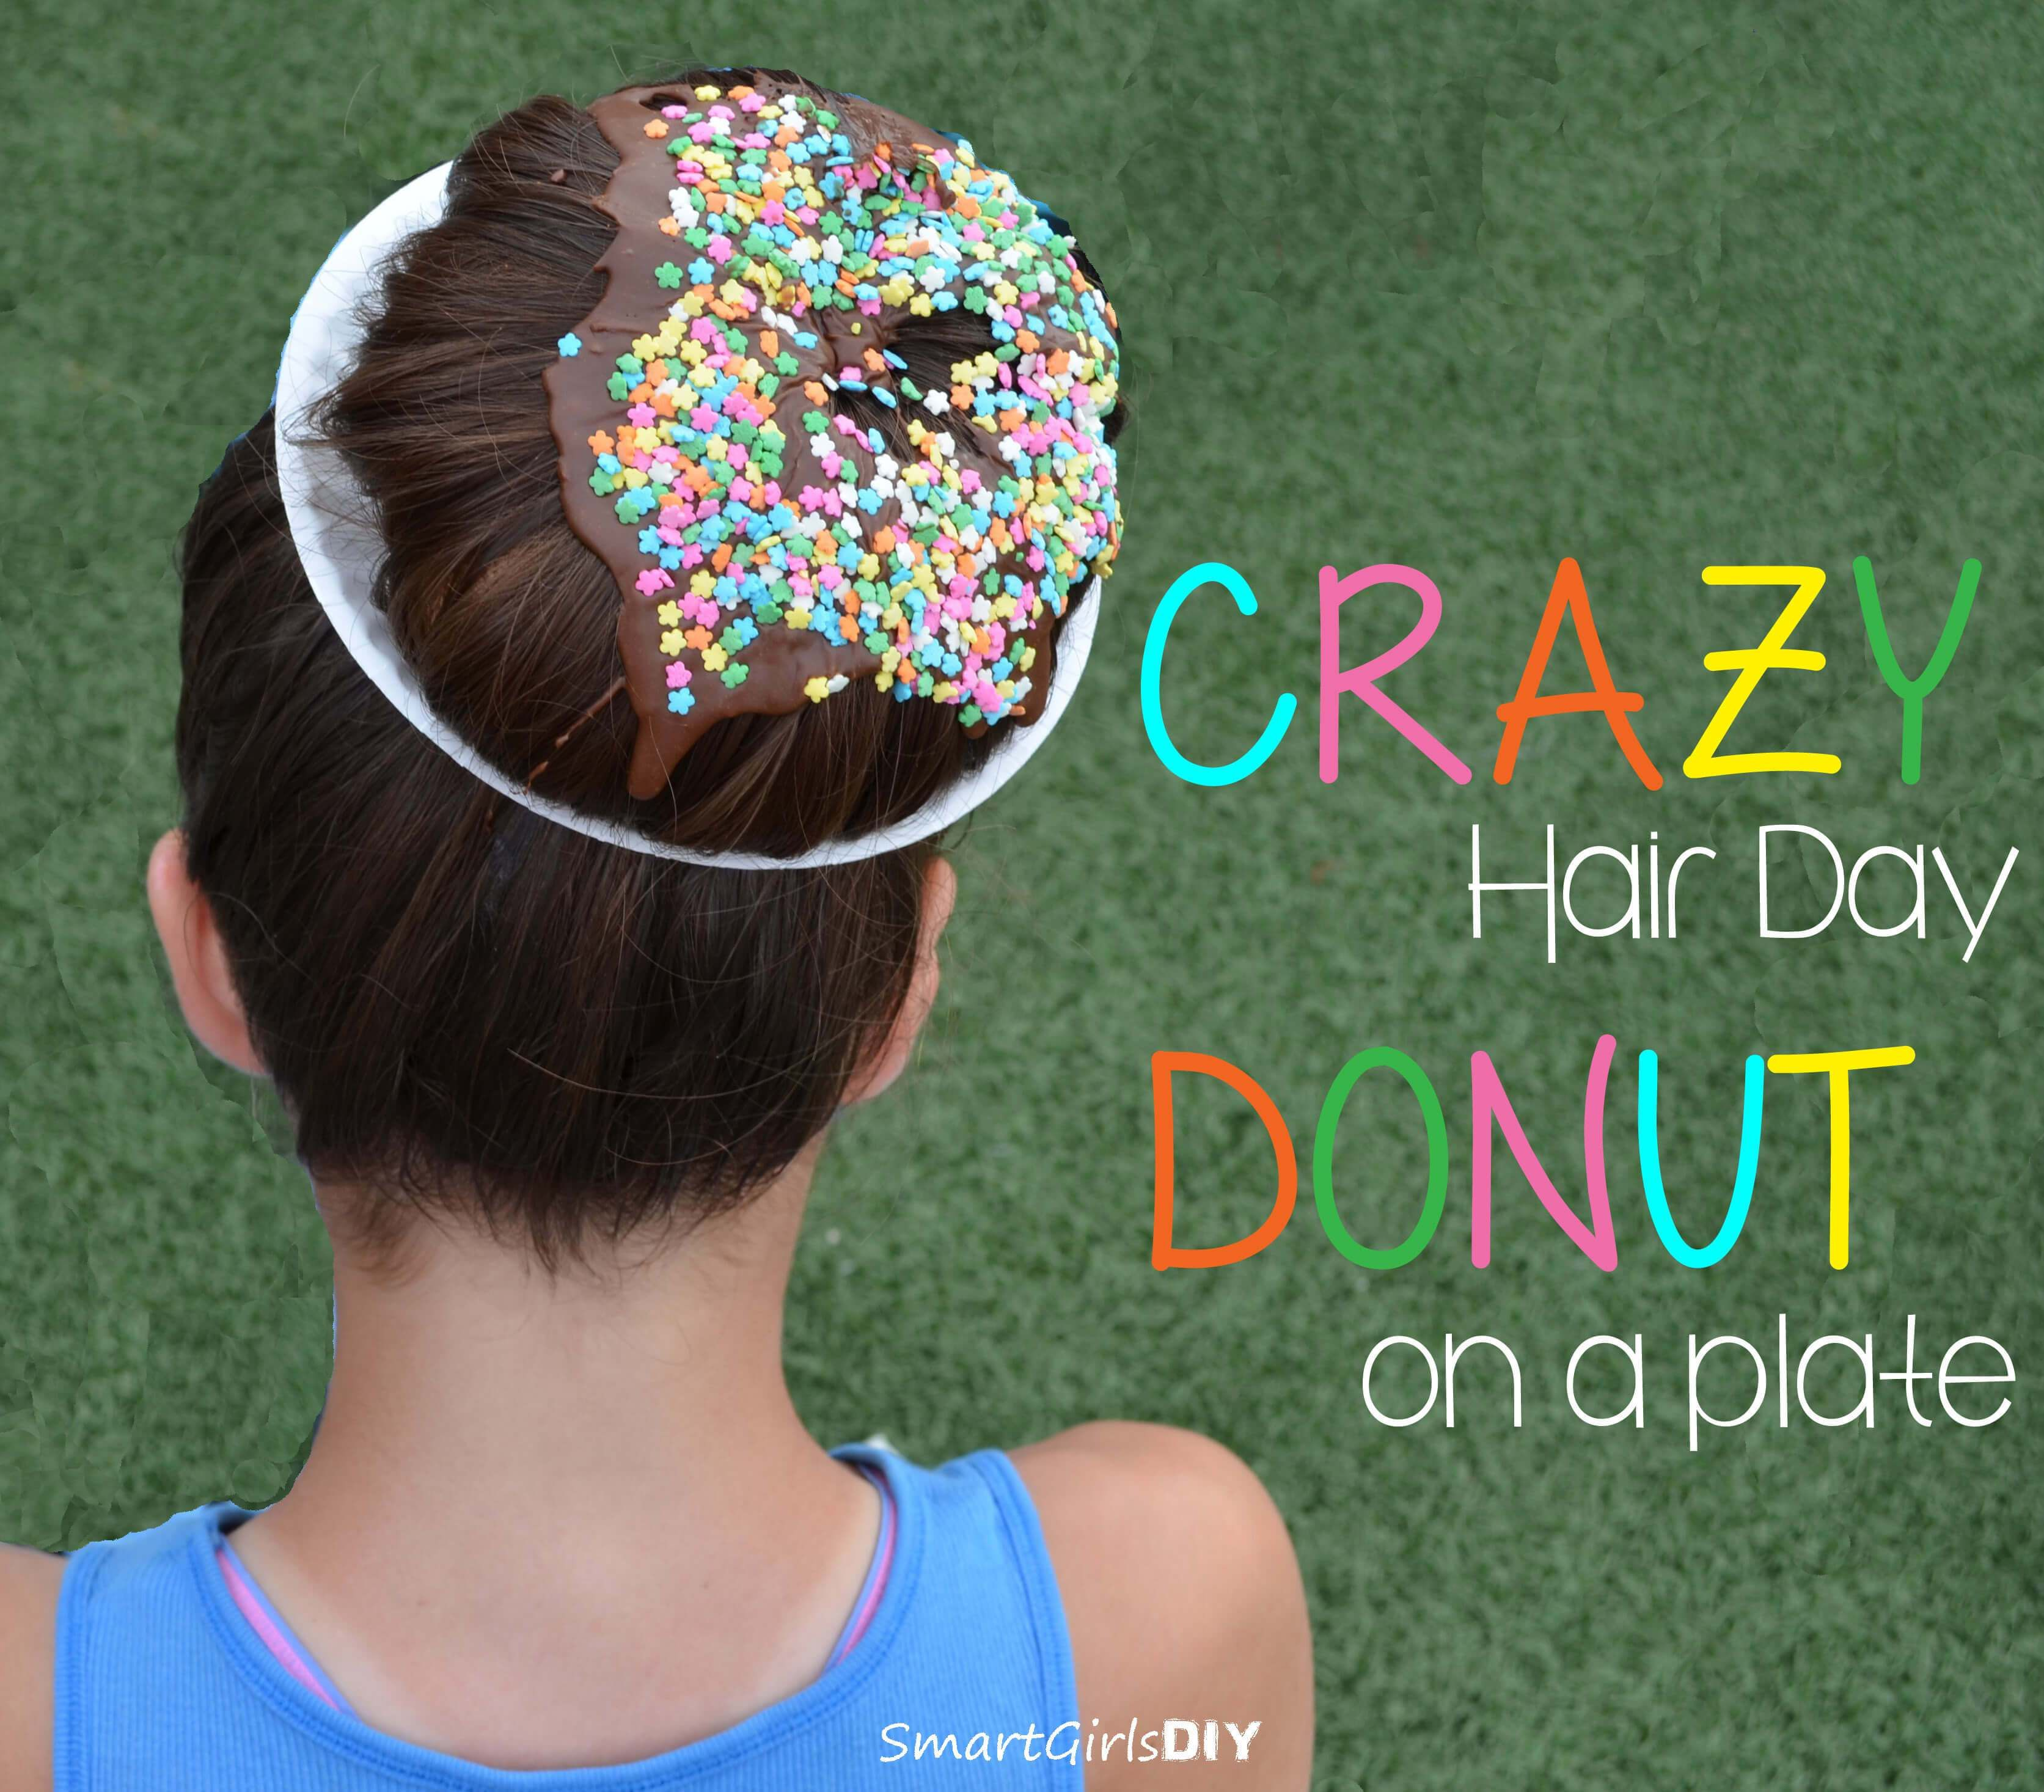 Crazy hair day donut on a plate smart girls diy do it crazy hair day donut on a plate smart girls diy solutioingenieria Image collections